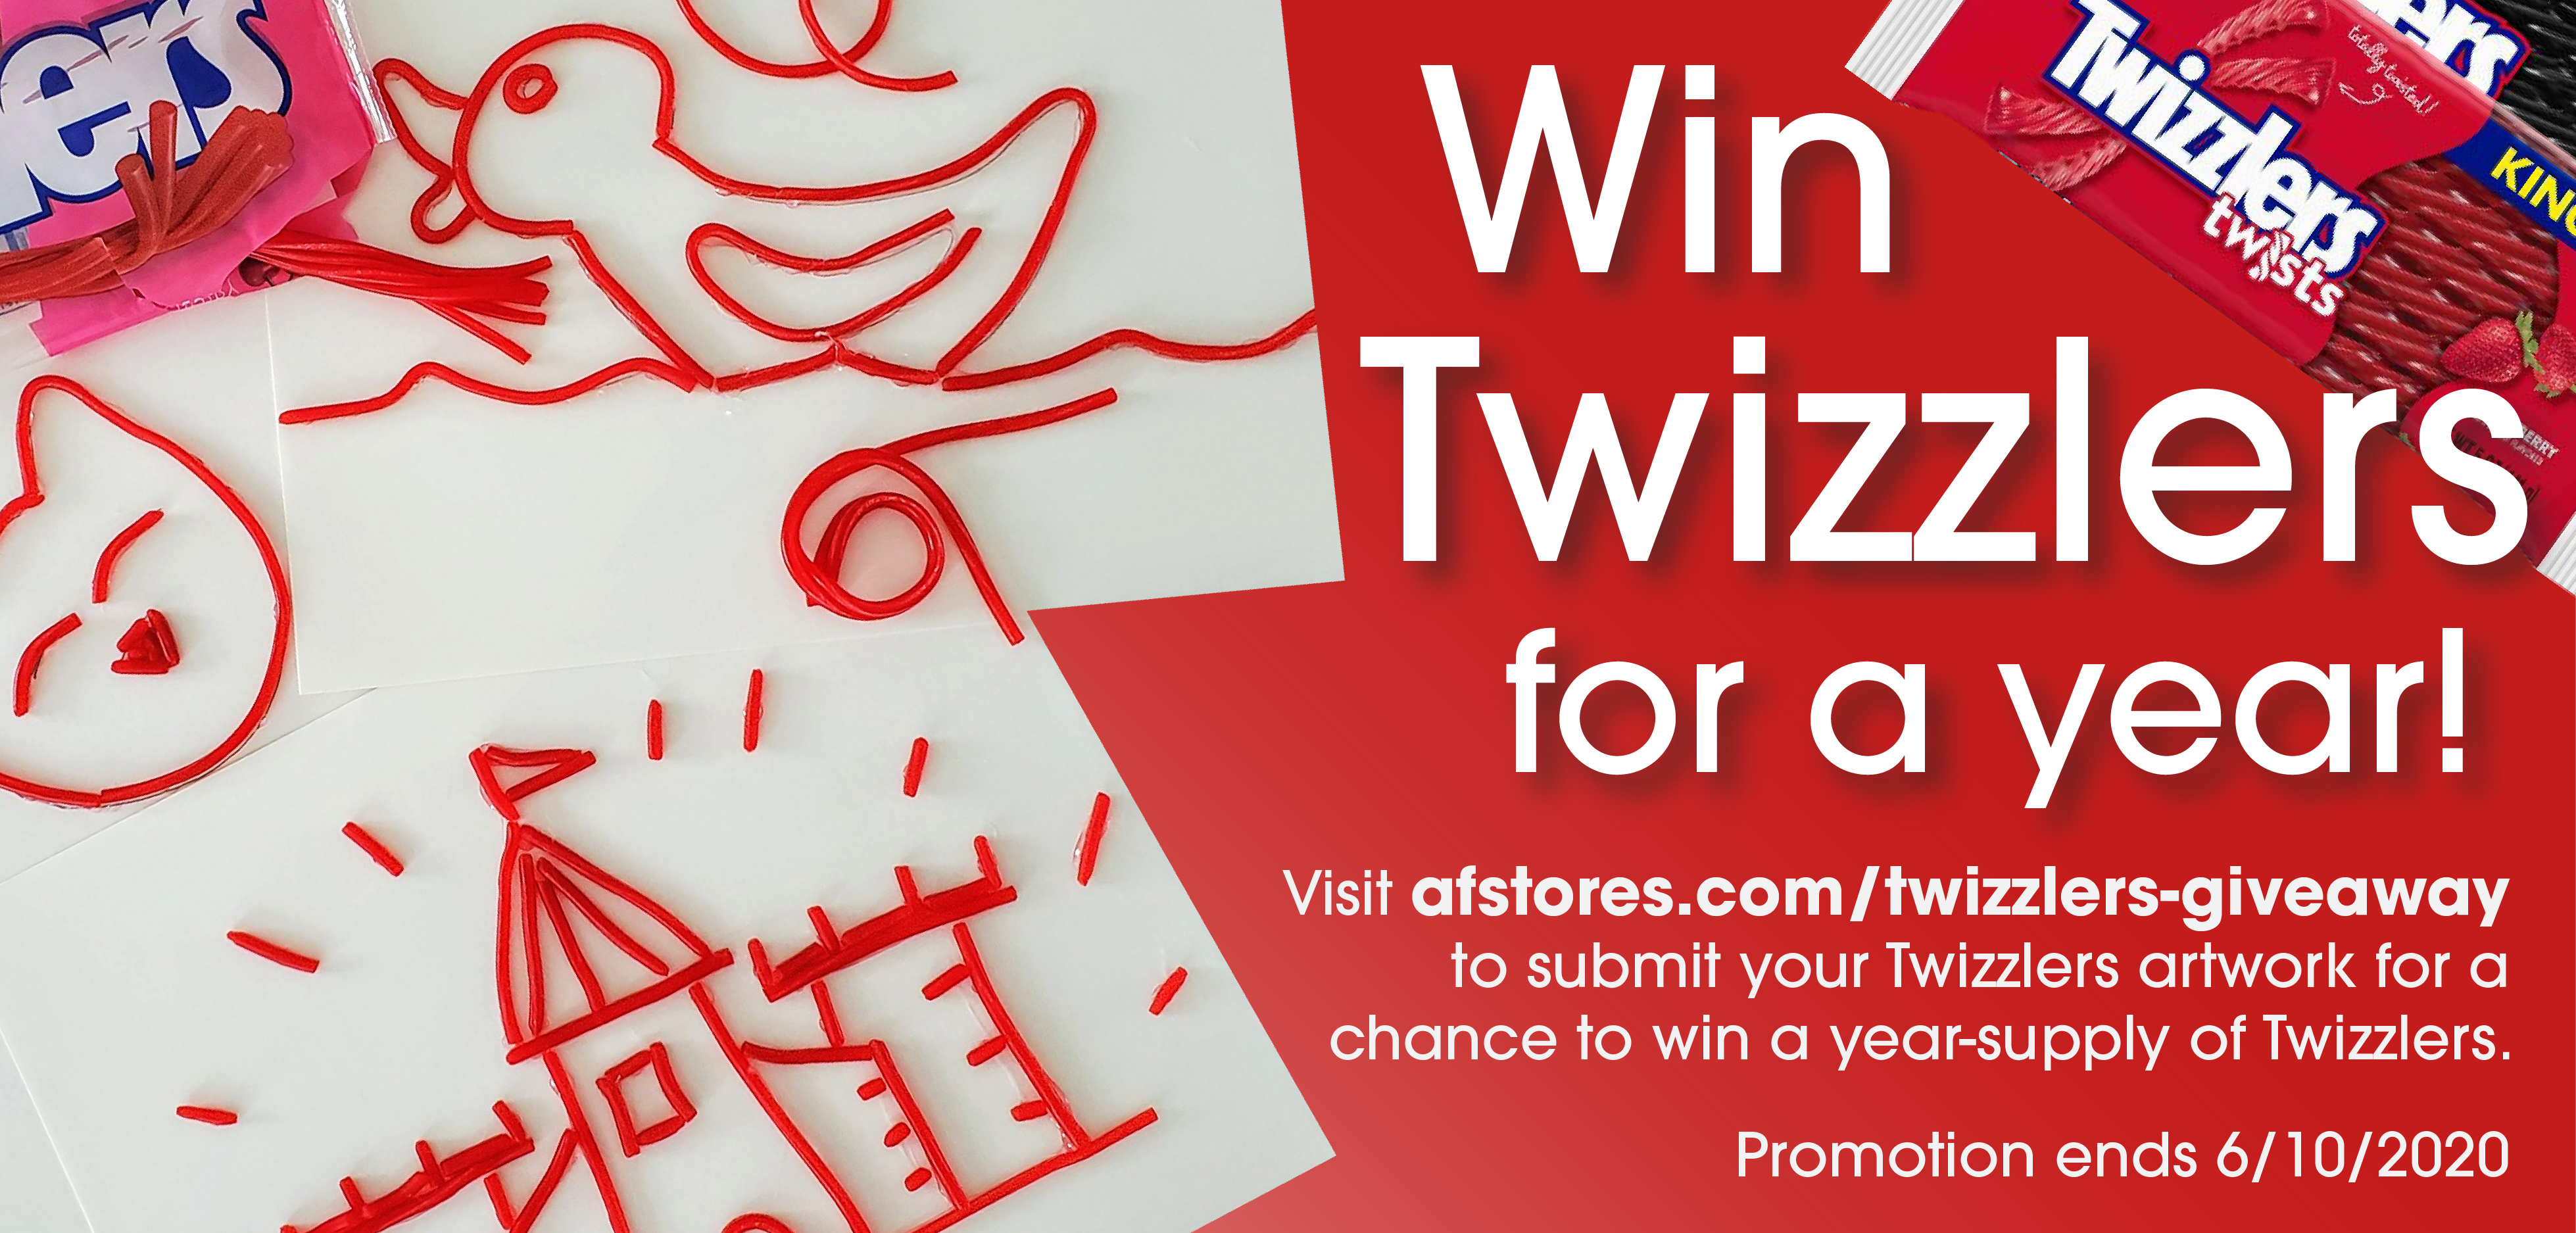 Enter to win a Year Supply of Twizzlers!